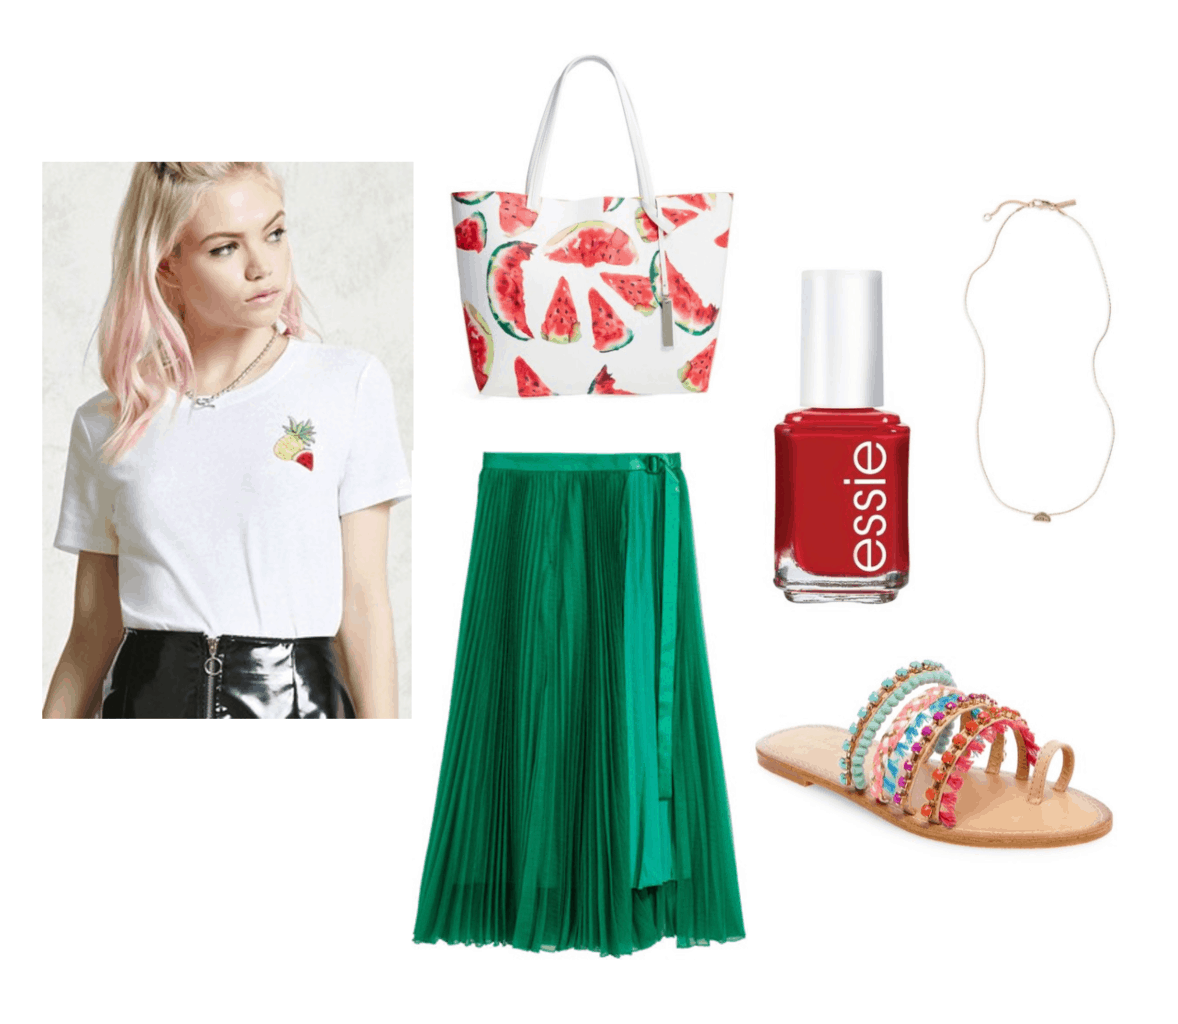 Cute and sweet outfit idea: Green skirt, watermelon tote bag, fruit graphic tee, red nail polish, simple pendant necklace, beaded sandals - Outfit inspired by Red Velvet's Red Flavor music video